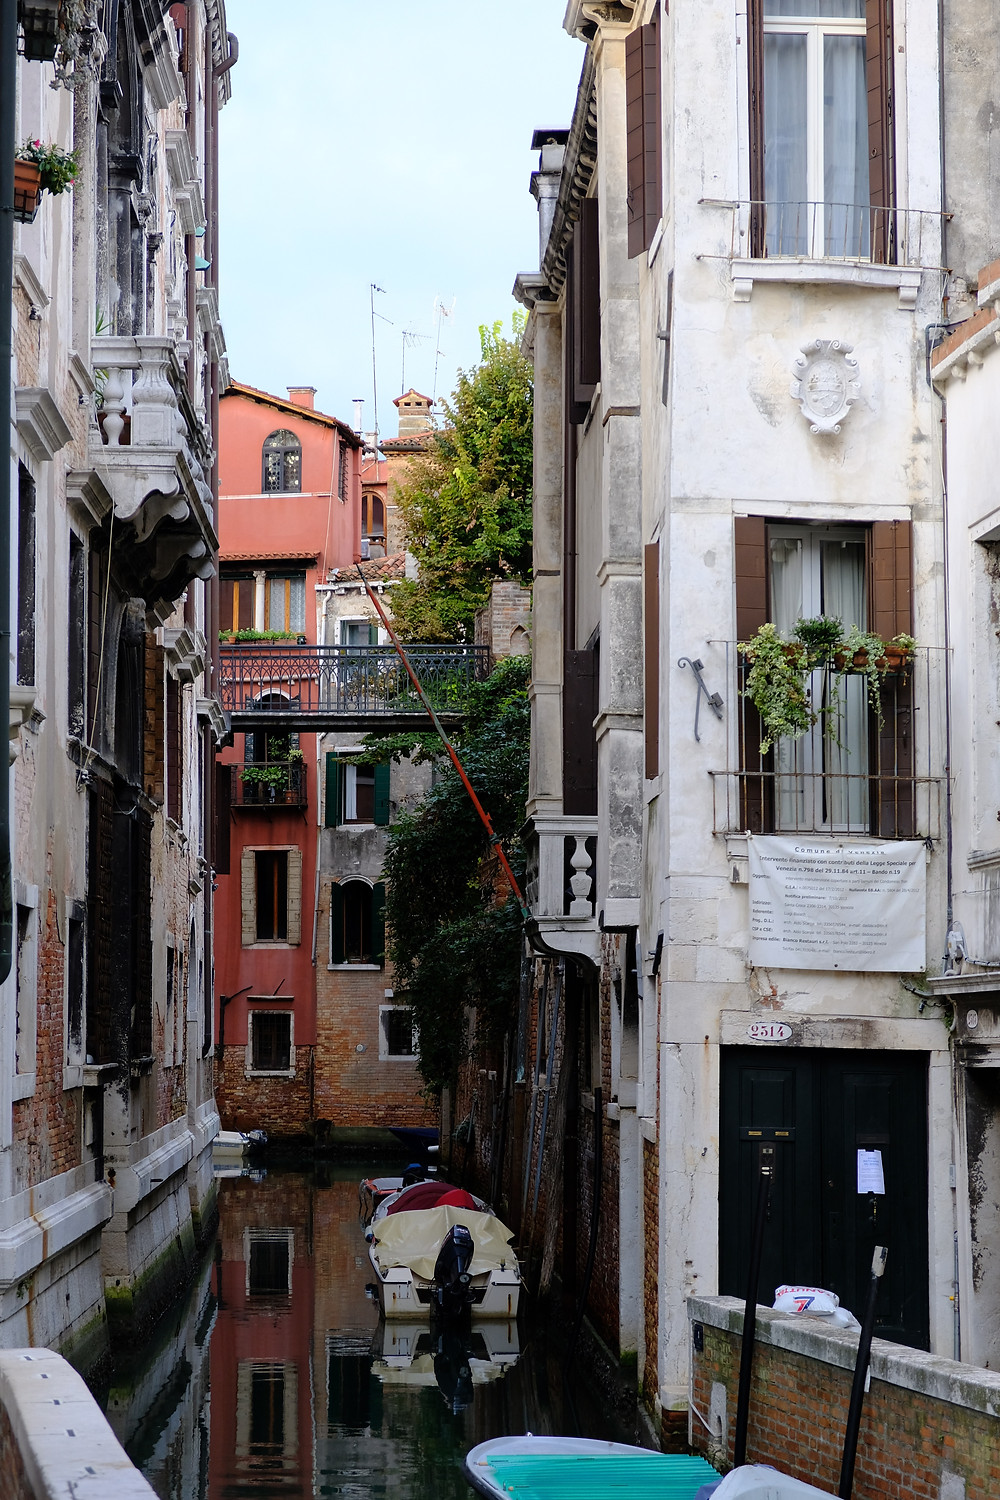 canal in Venice with buildings on both sides, a tree and boats in the water